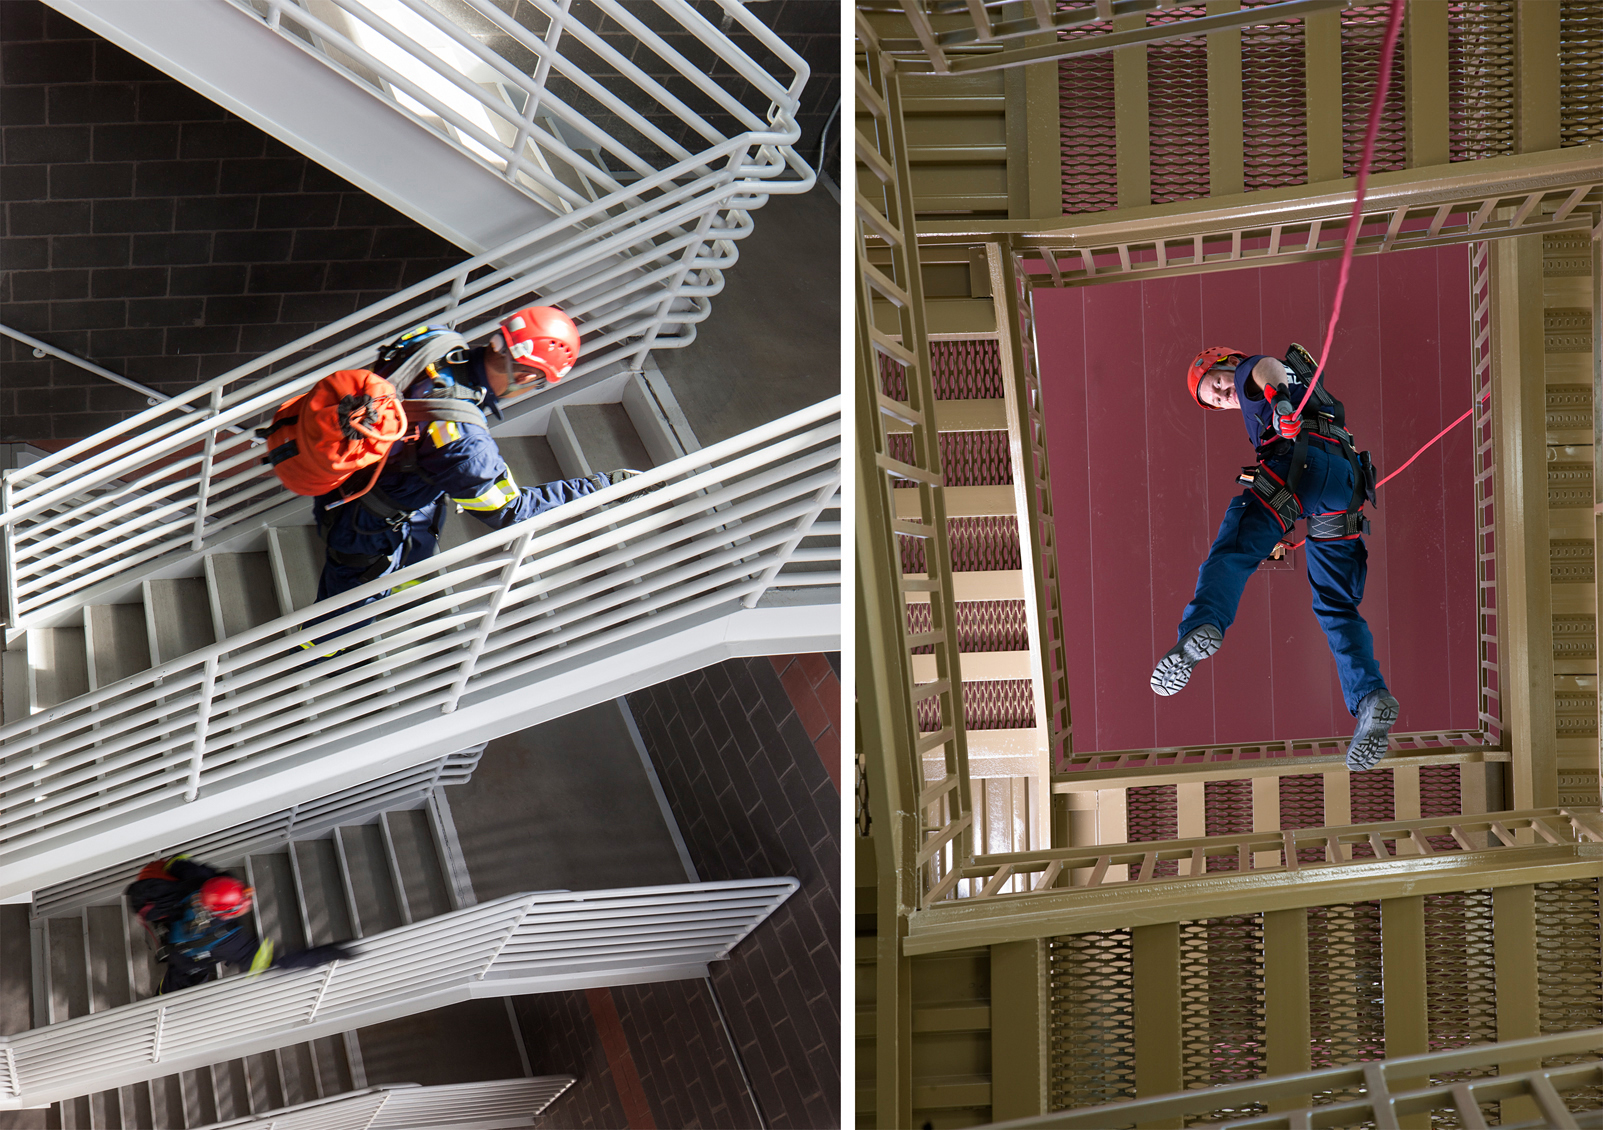 Interior views of fire station with fire men rapelling from tower and carrying packs up staircase.Architectural Photography by: Paul Richer / RICHER IMAGES